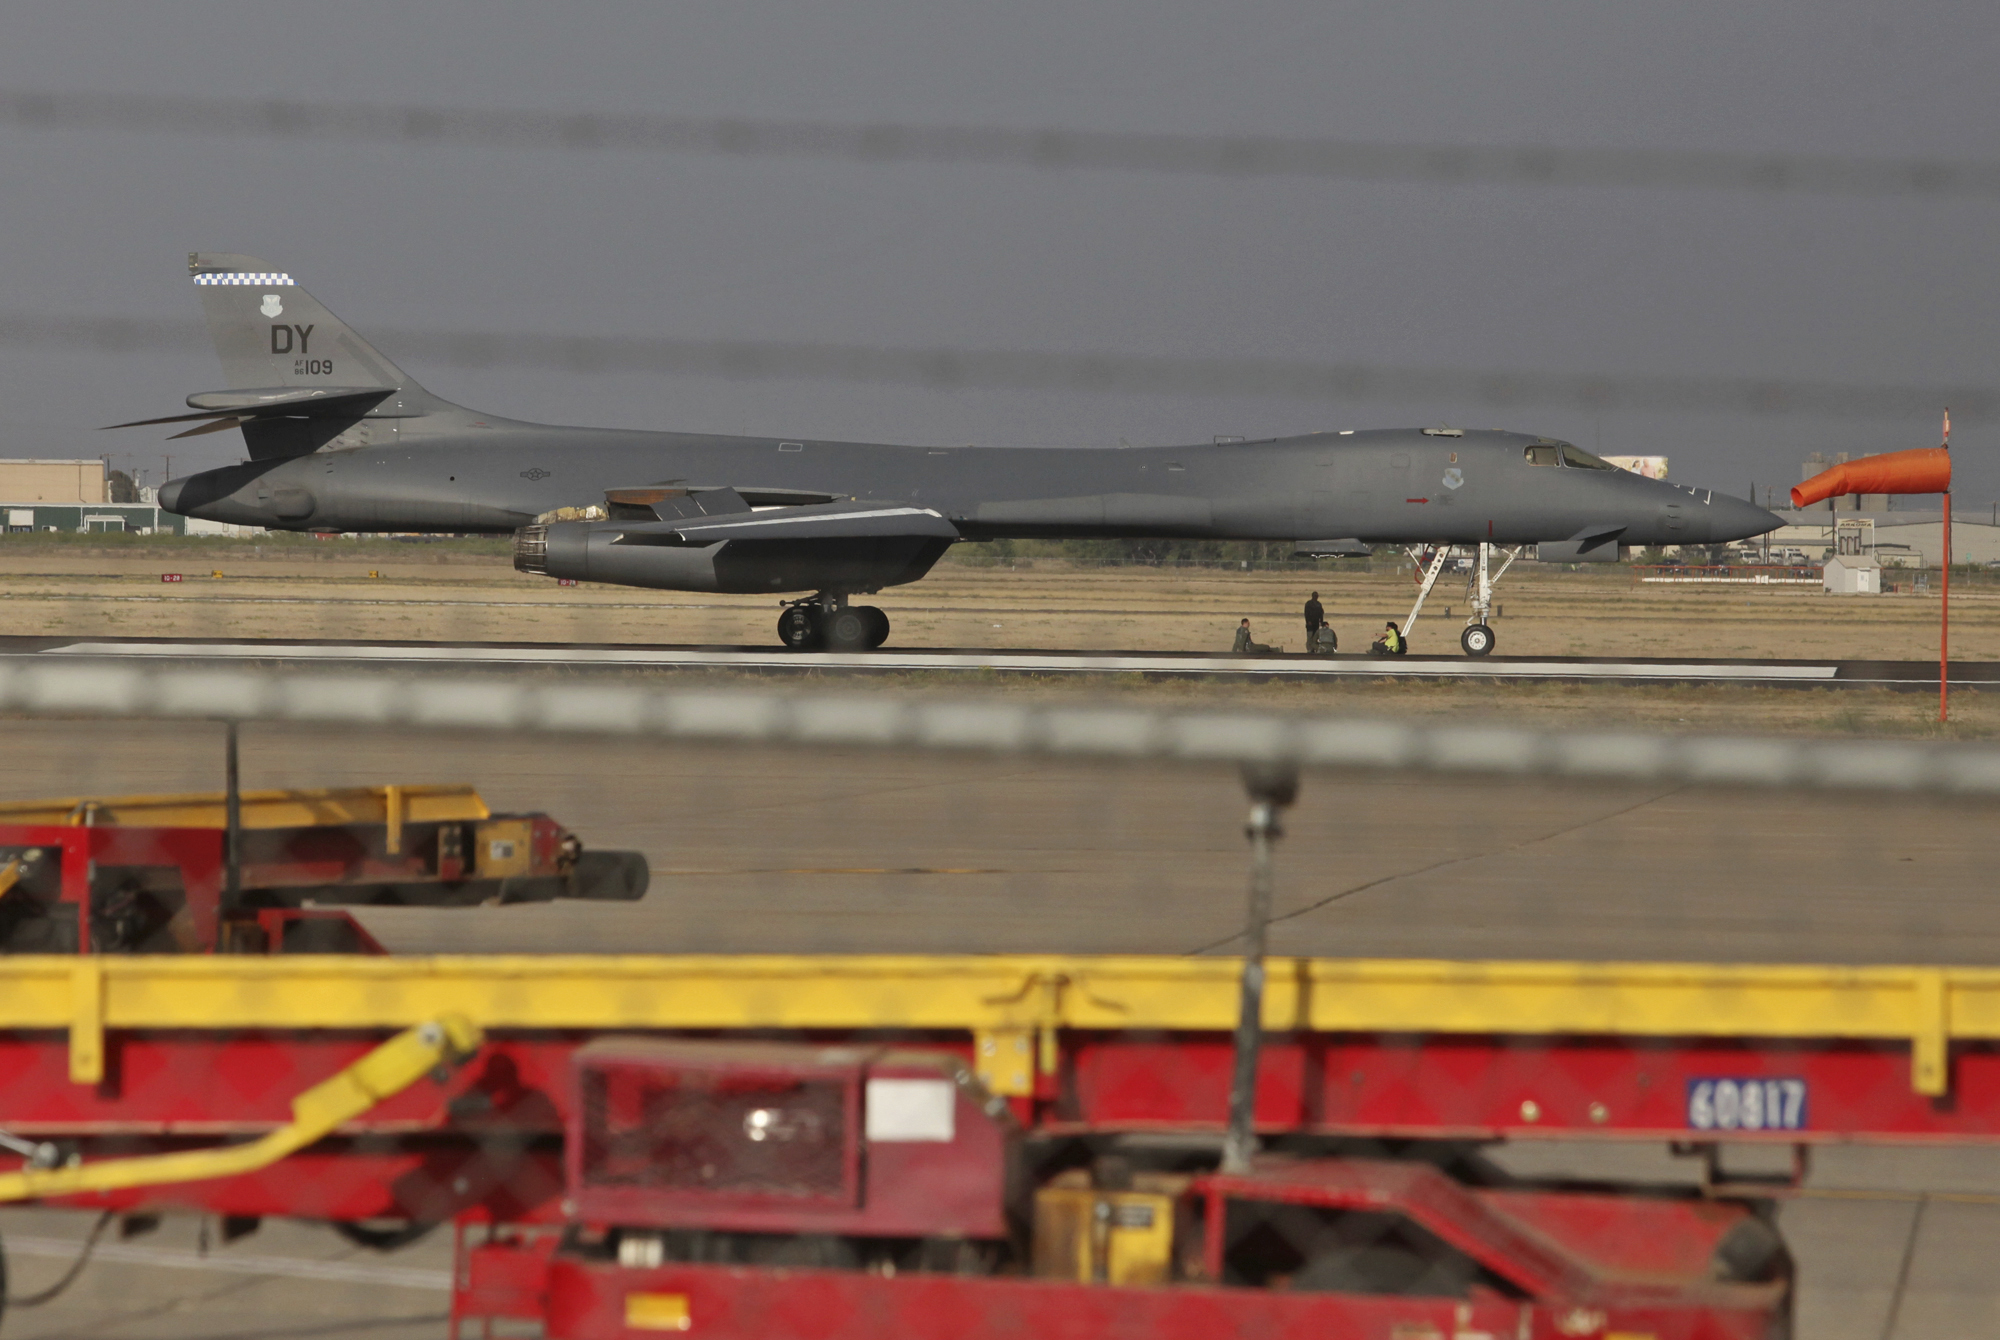 The B-1 Lancer after making an emergency landing at Midland International Air and Space Port, May 1, 2018, also showing the missing emergency hatch. The aircraft is a supersonic variable-sweep wing, heavy bomber used by the United States Air Force. (Jacob Ford/Odessa American via AP)